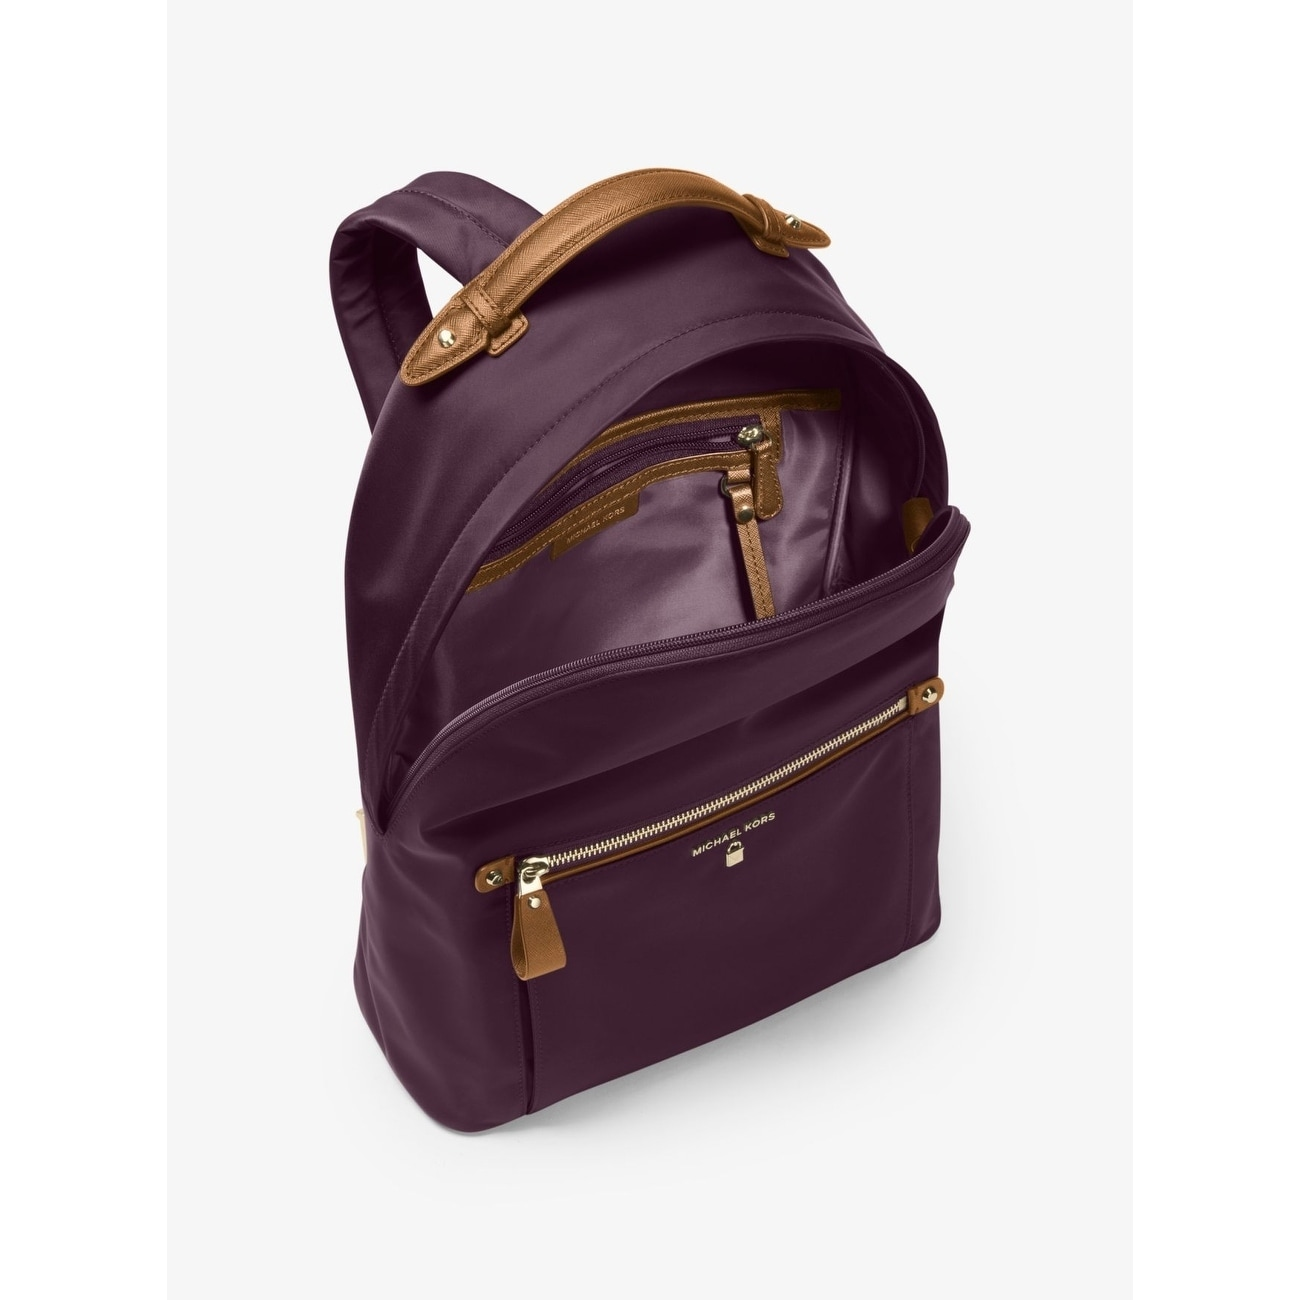 bf03c16a673c Shop MICHAEL Michael Kors Kelsey Large Backpack Damson - Free Shipping  Today - Overstock - 18266299